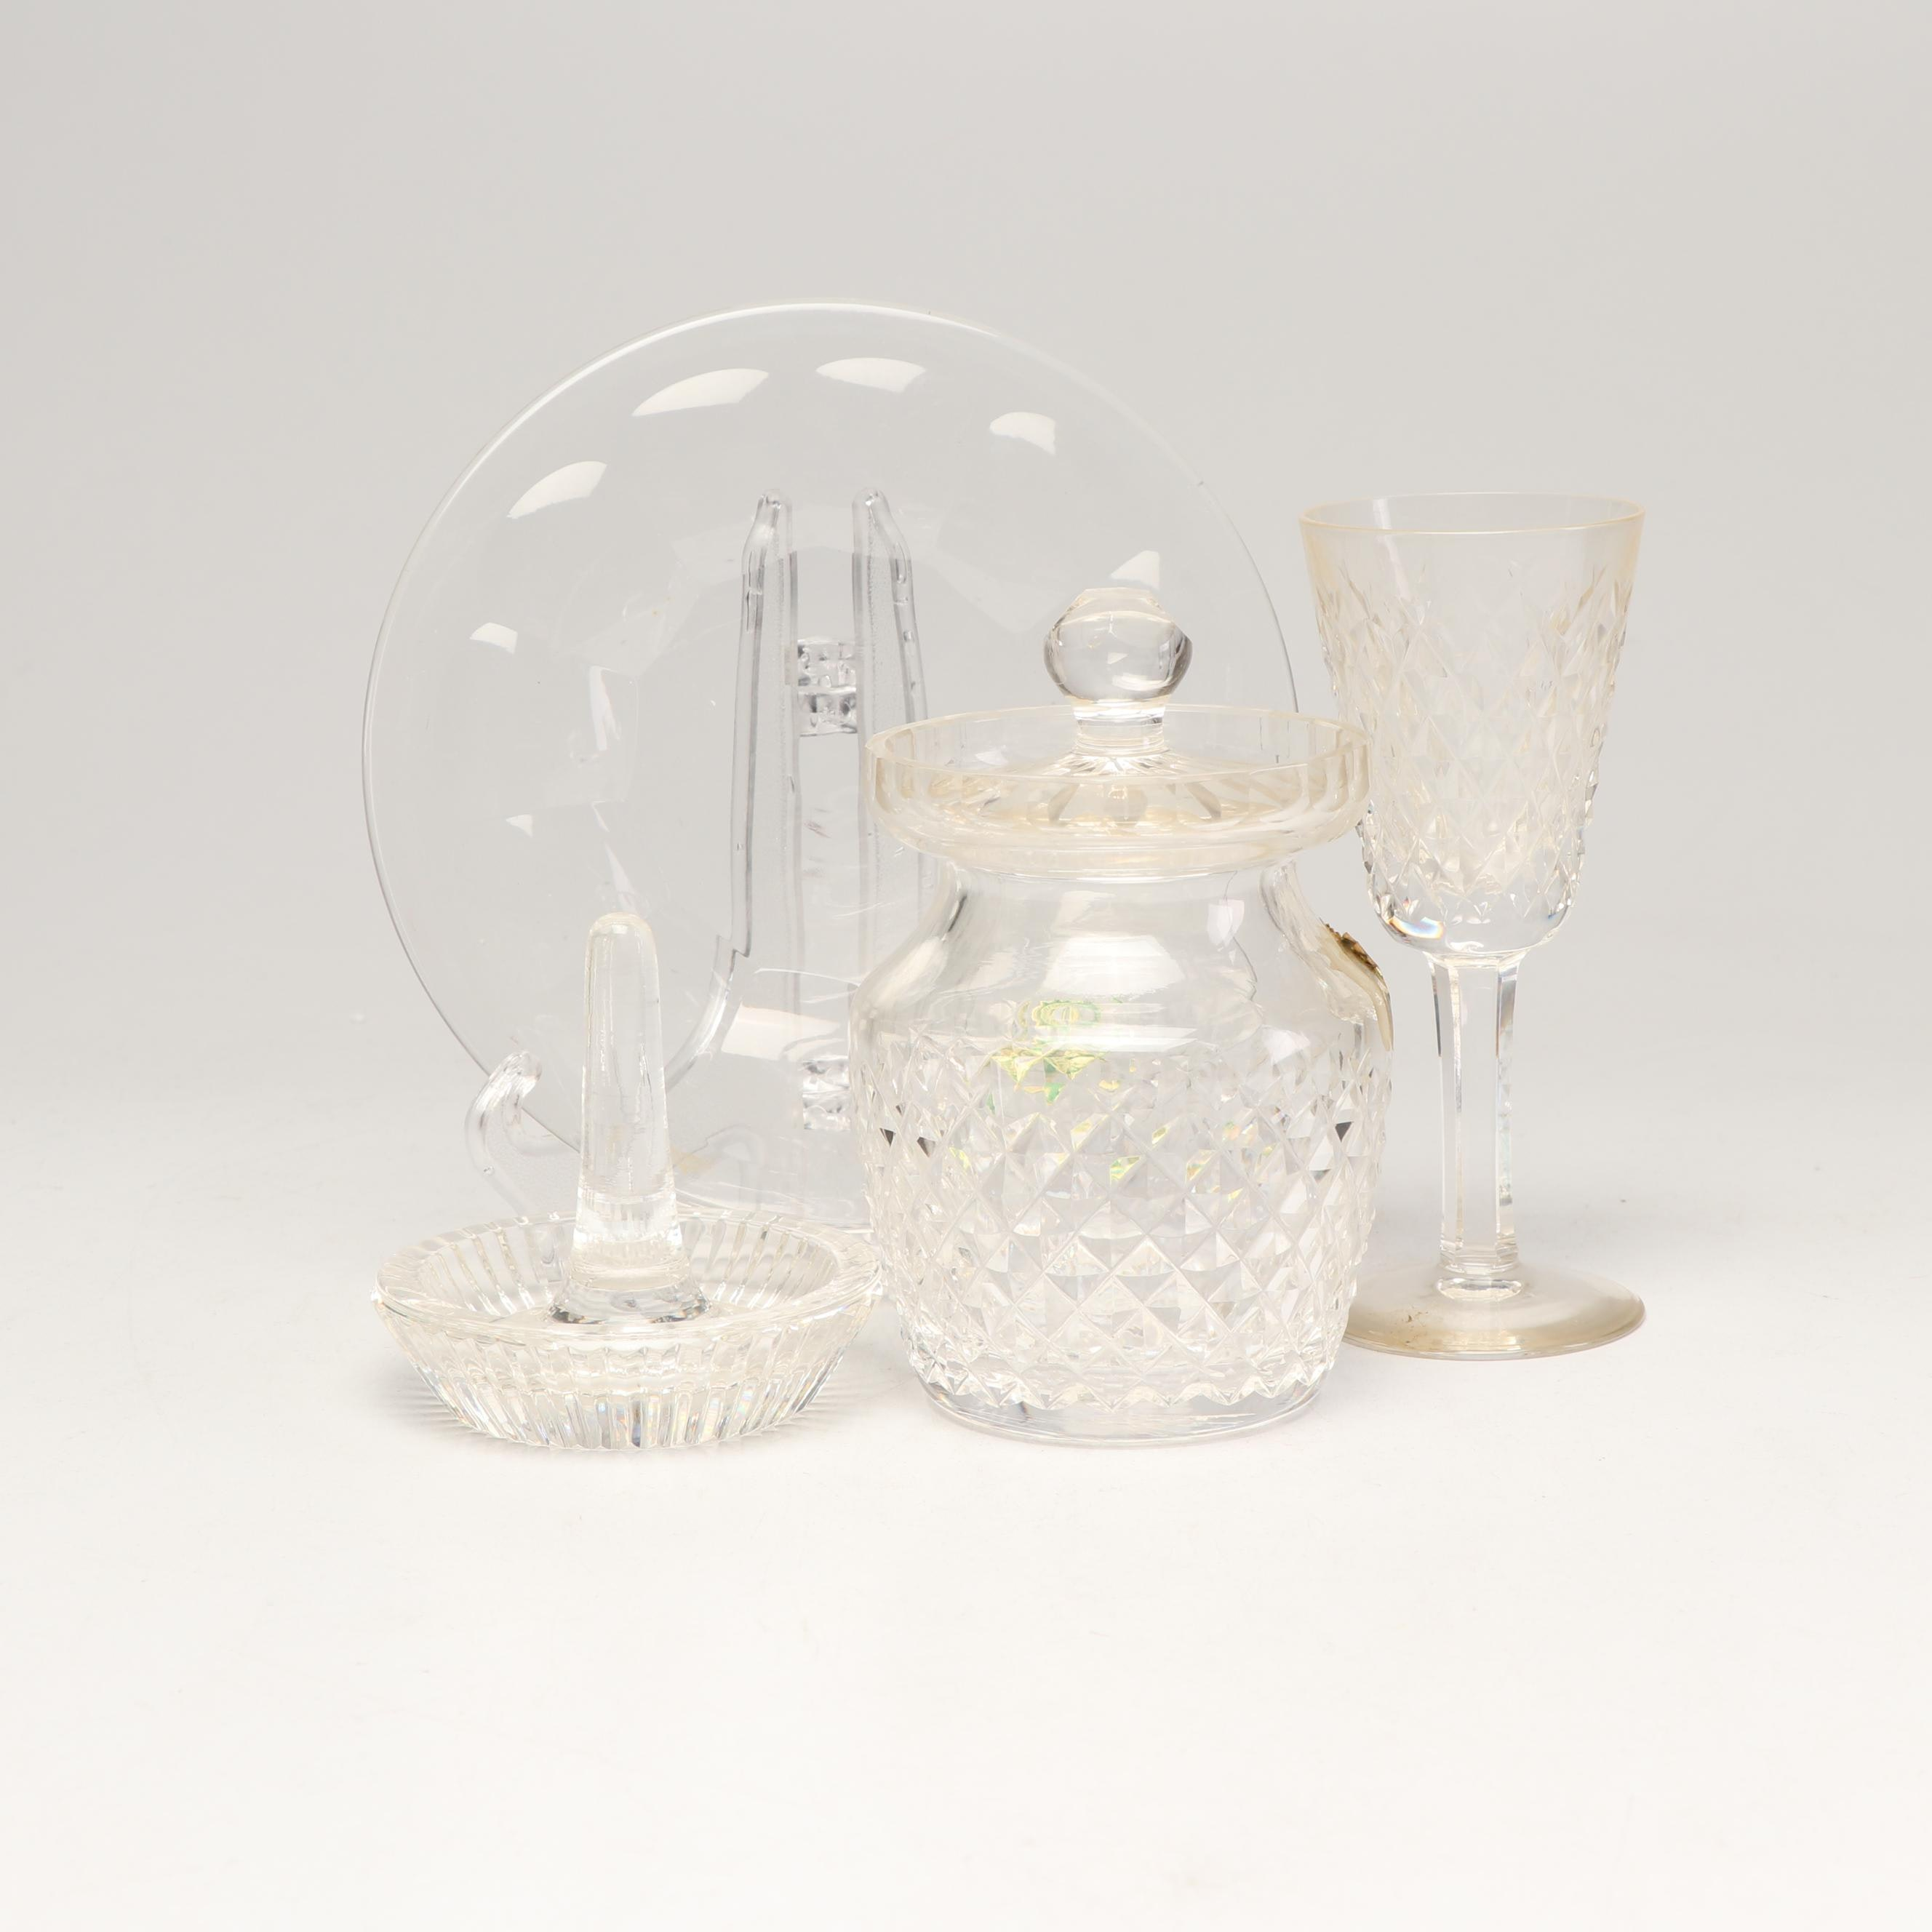 Waterford Crystal Jam Jar, Ring Holder, Dish and Cordial Glass